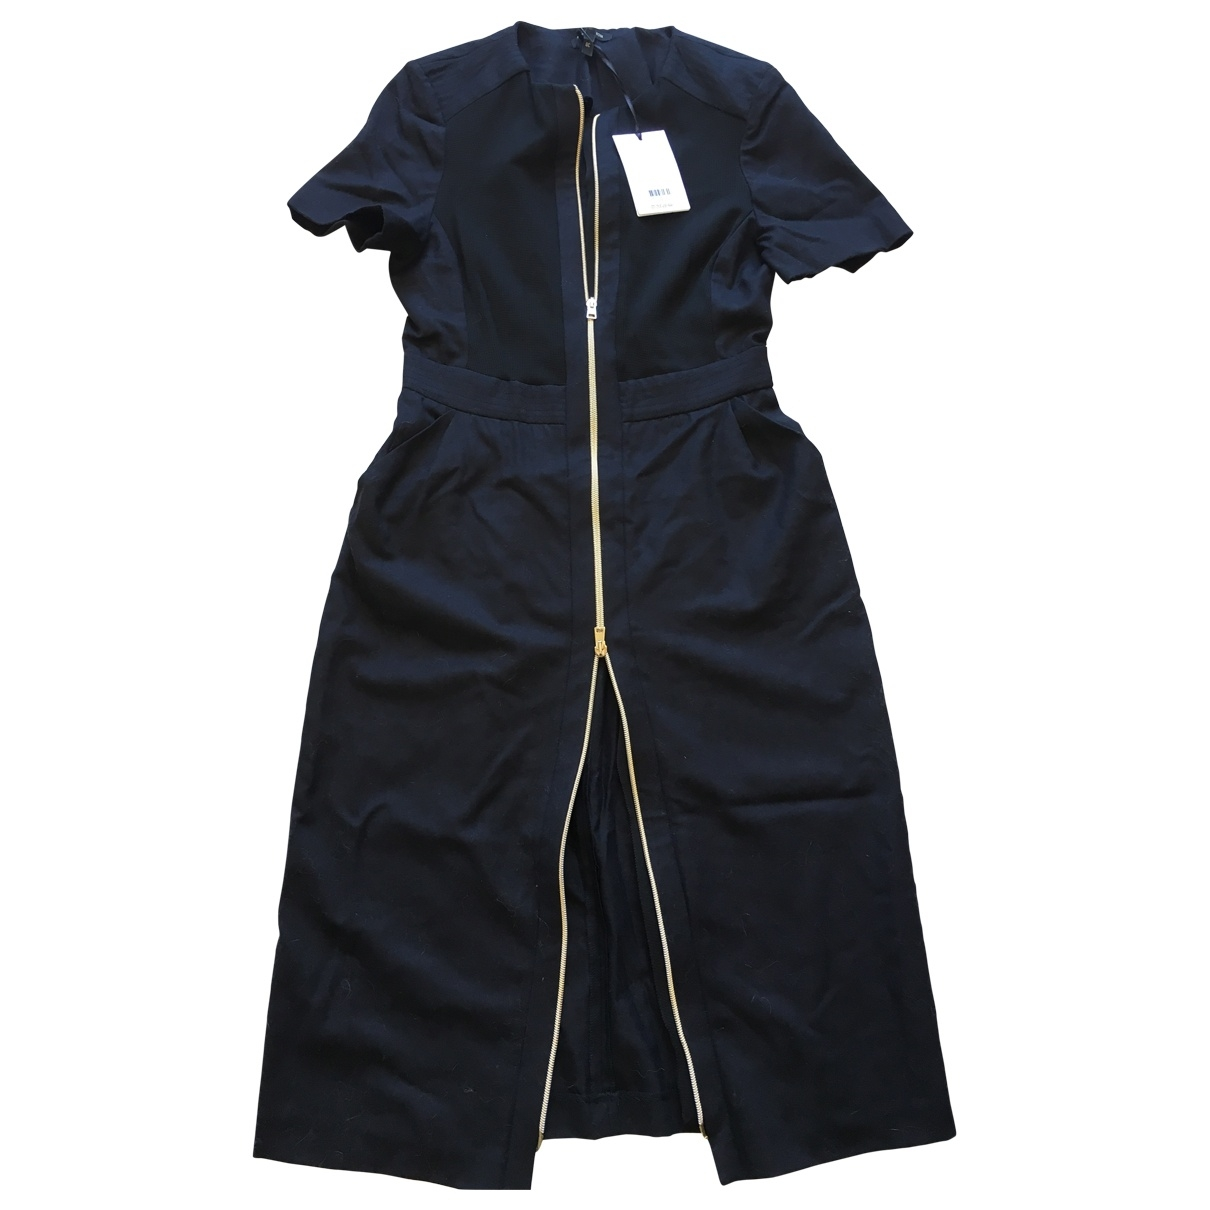 Tara Jarmon \N Navy Wool dress for Women 38 FR